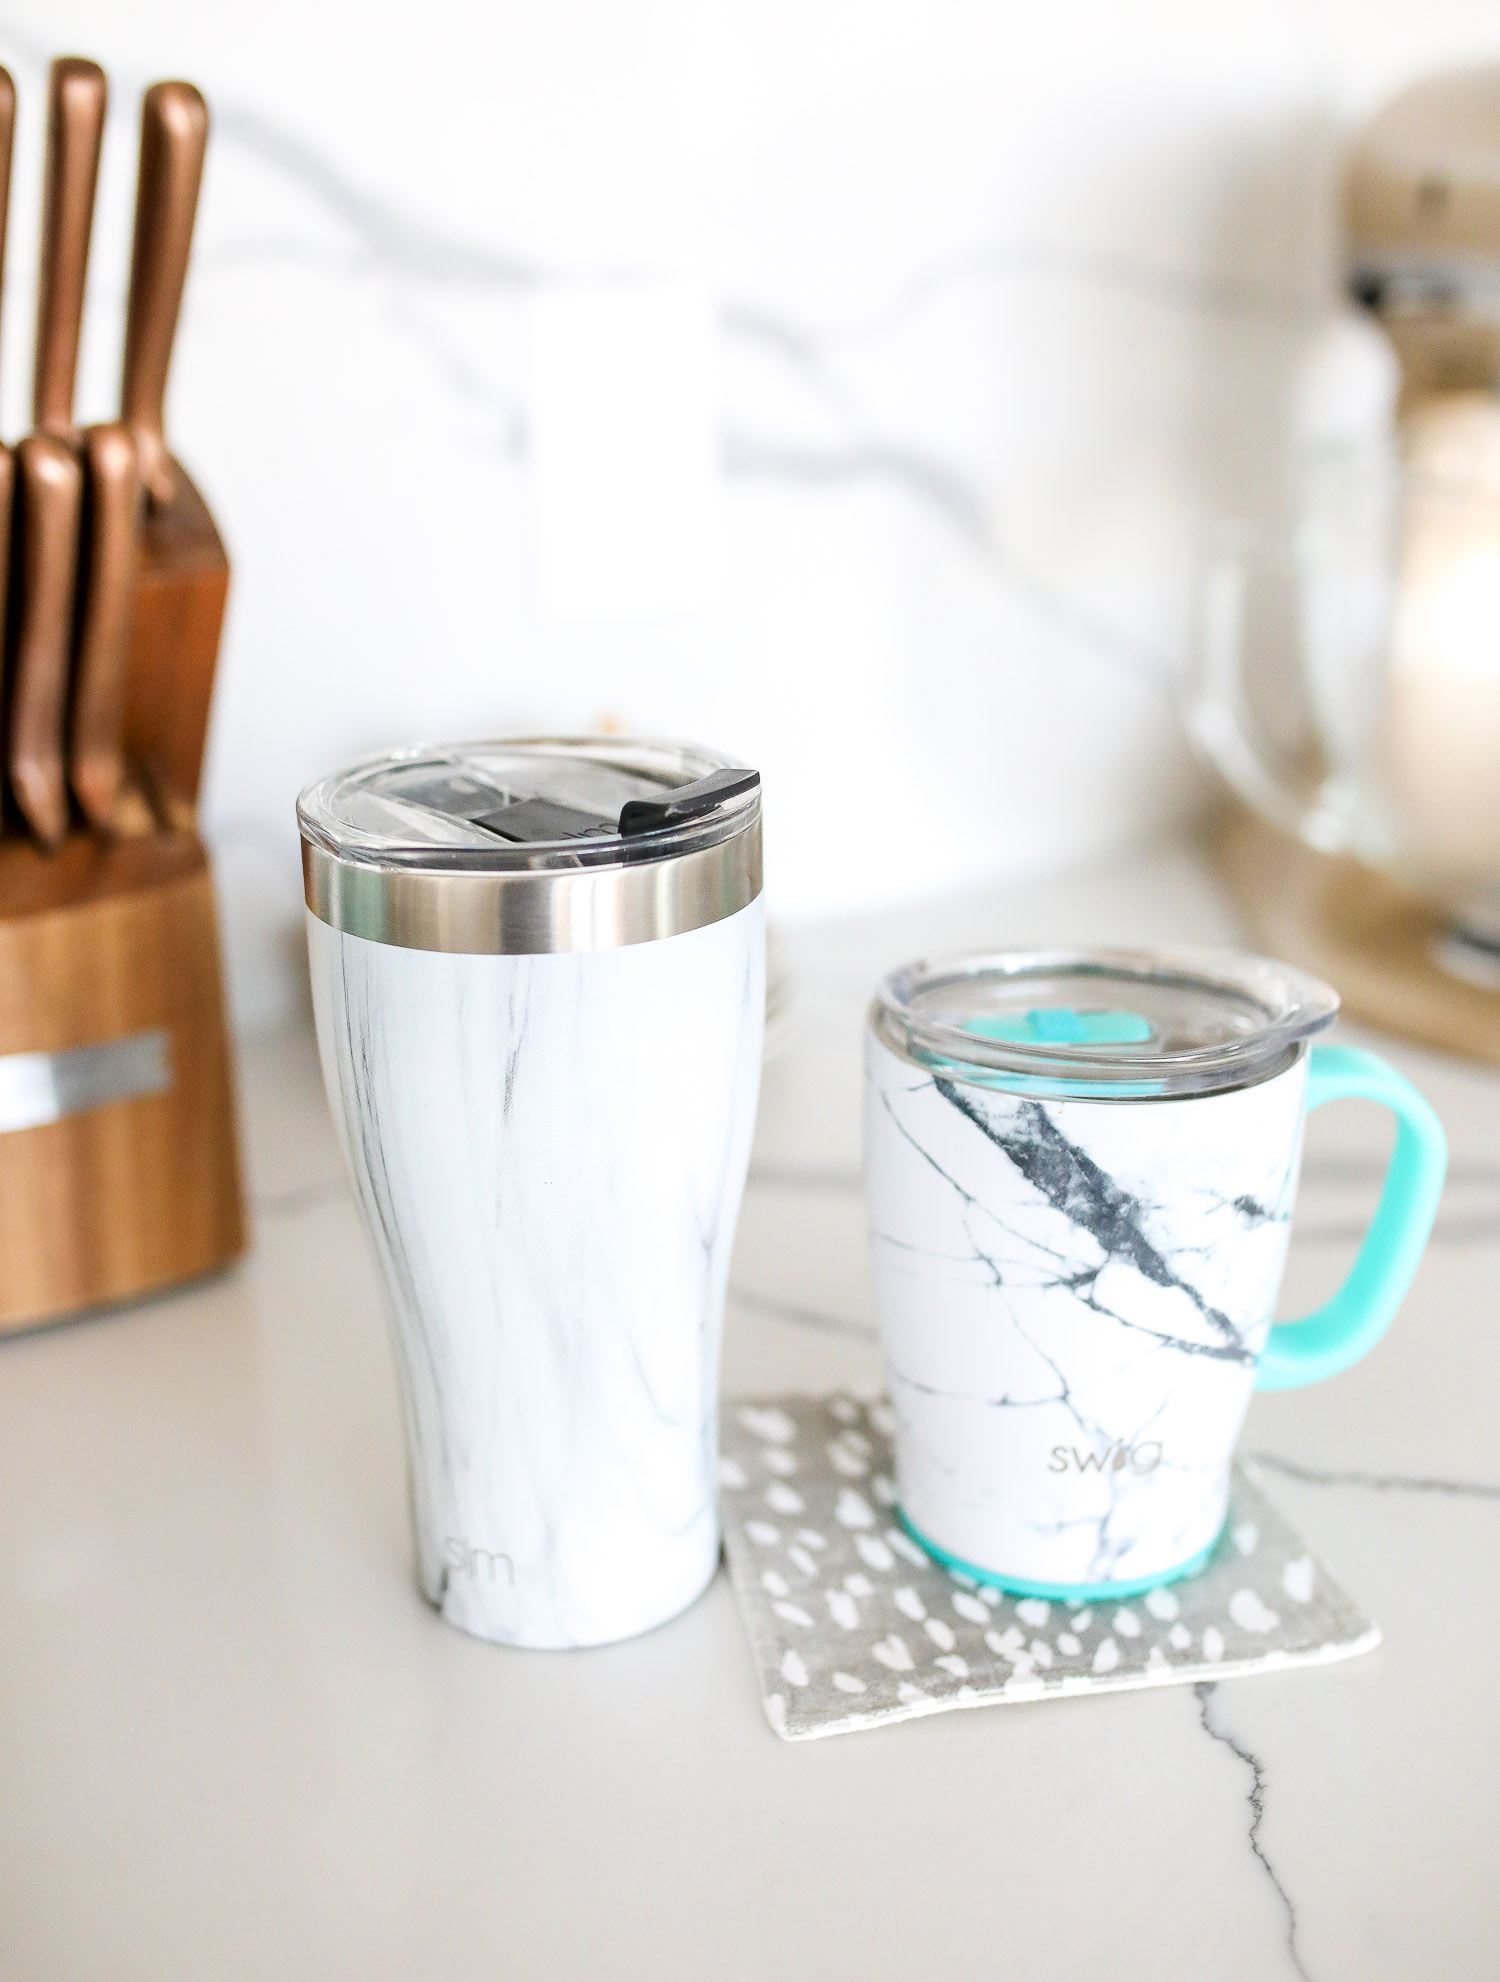 swig marble cup insulated, top amazon must haves, amazon best buys 2020, emily gemma, amazon prime must haves blog post,_-4   Amazon Prime Favorites by popular US life and style blog, The Sweetest Thing: image of Amazon Prime Swig travel thermos and mug.